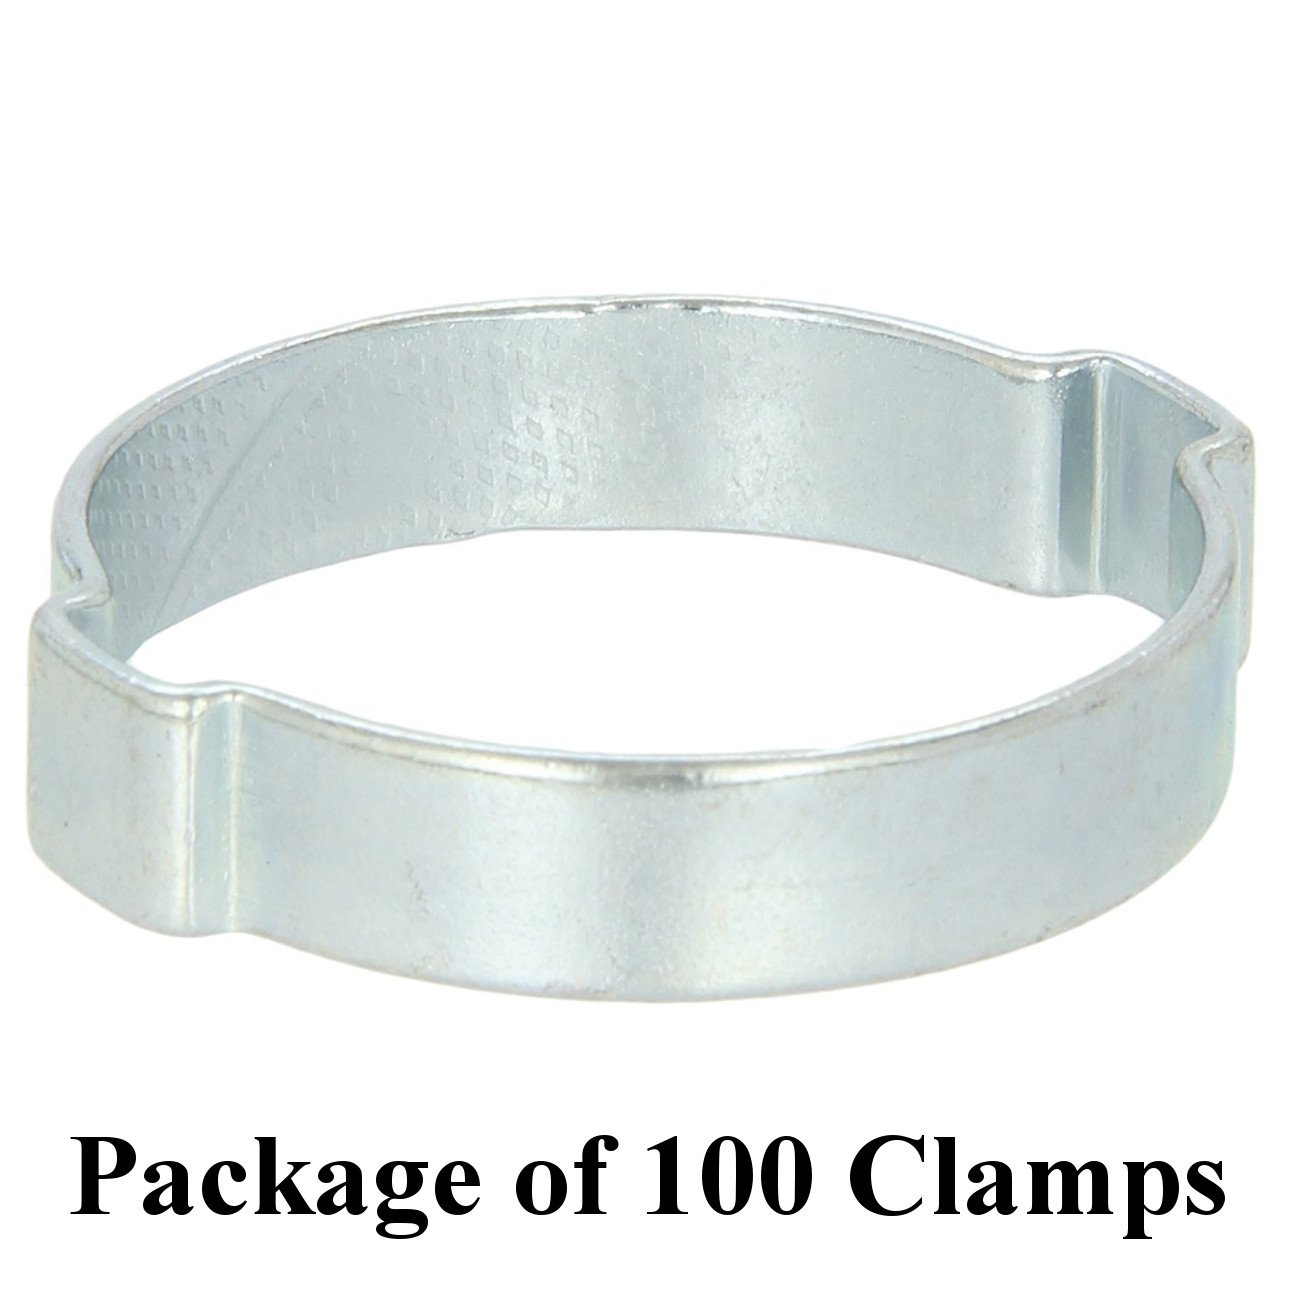 Size 5/8'' (18 mm), Oetiker Double Ear Clamps, Zinc-Plated Steel Hose Clamp, 7 Pack Sizes Available (100)